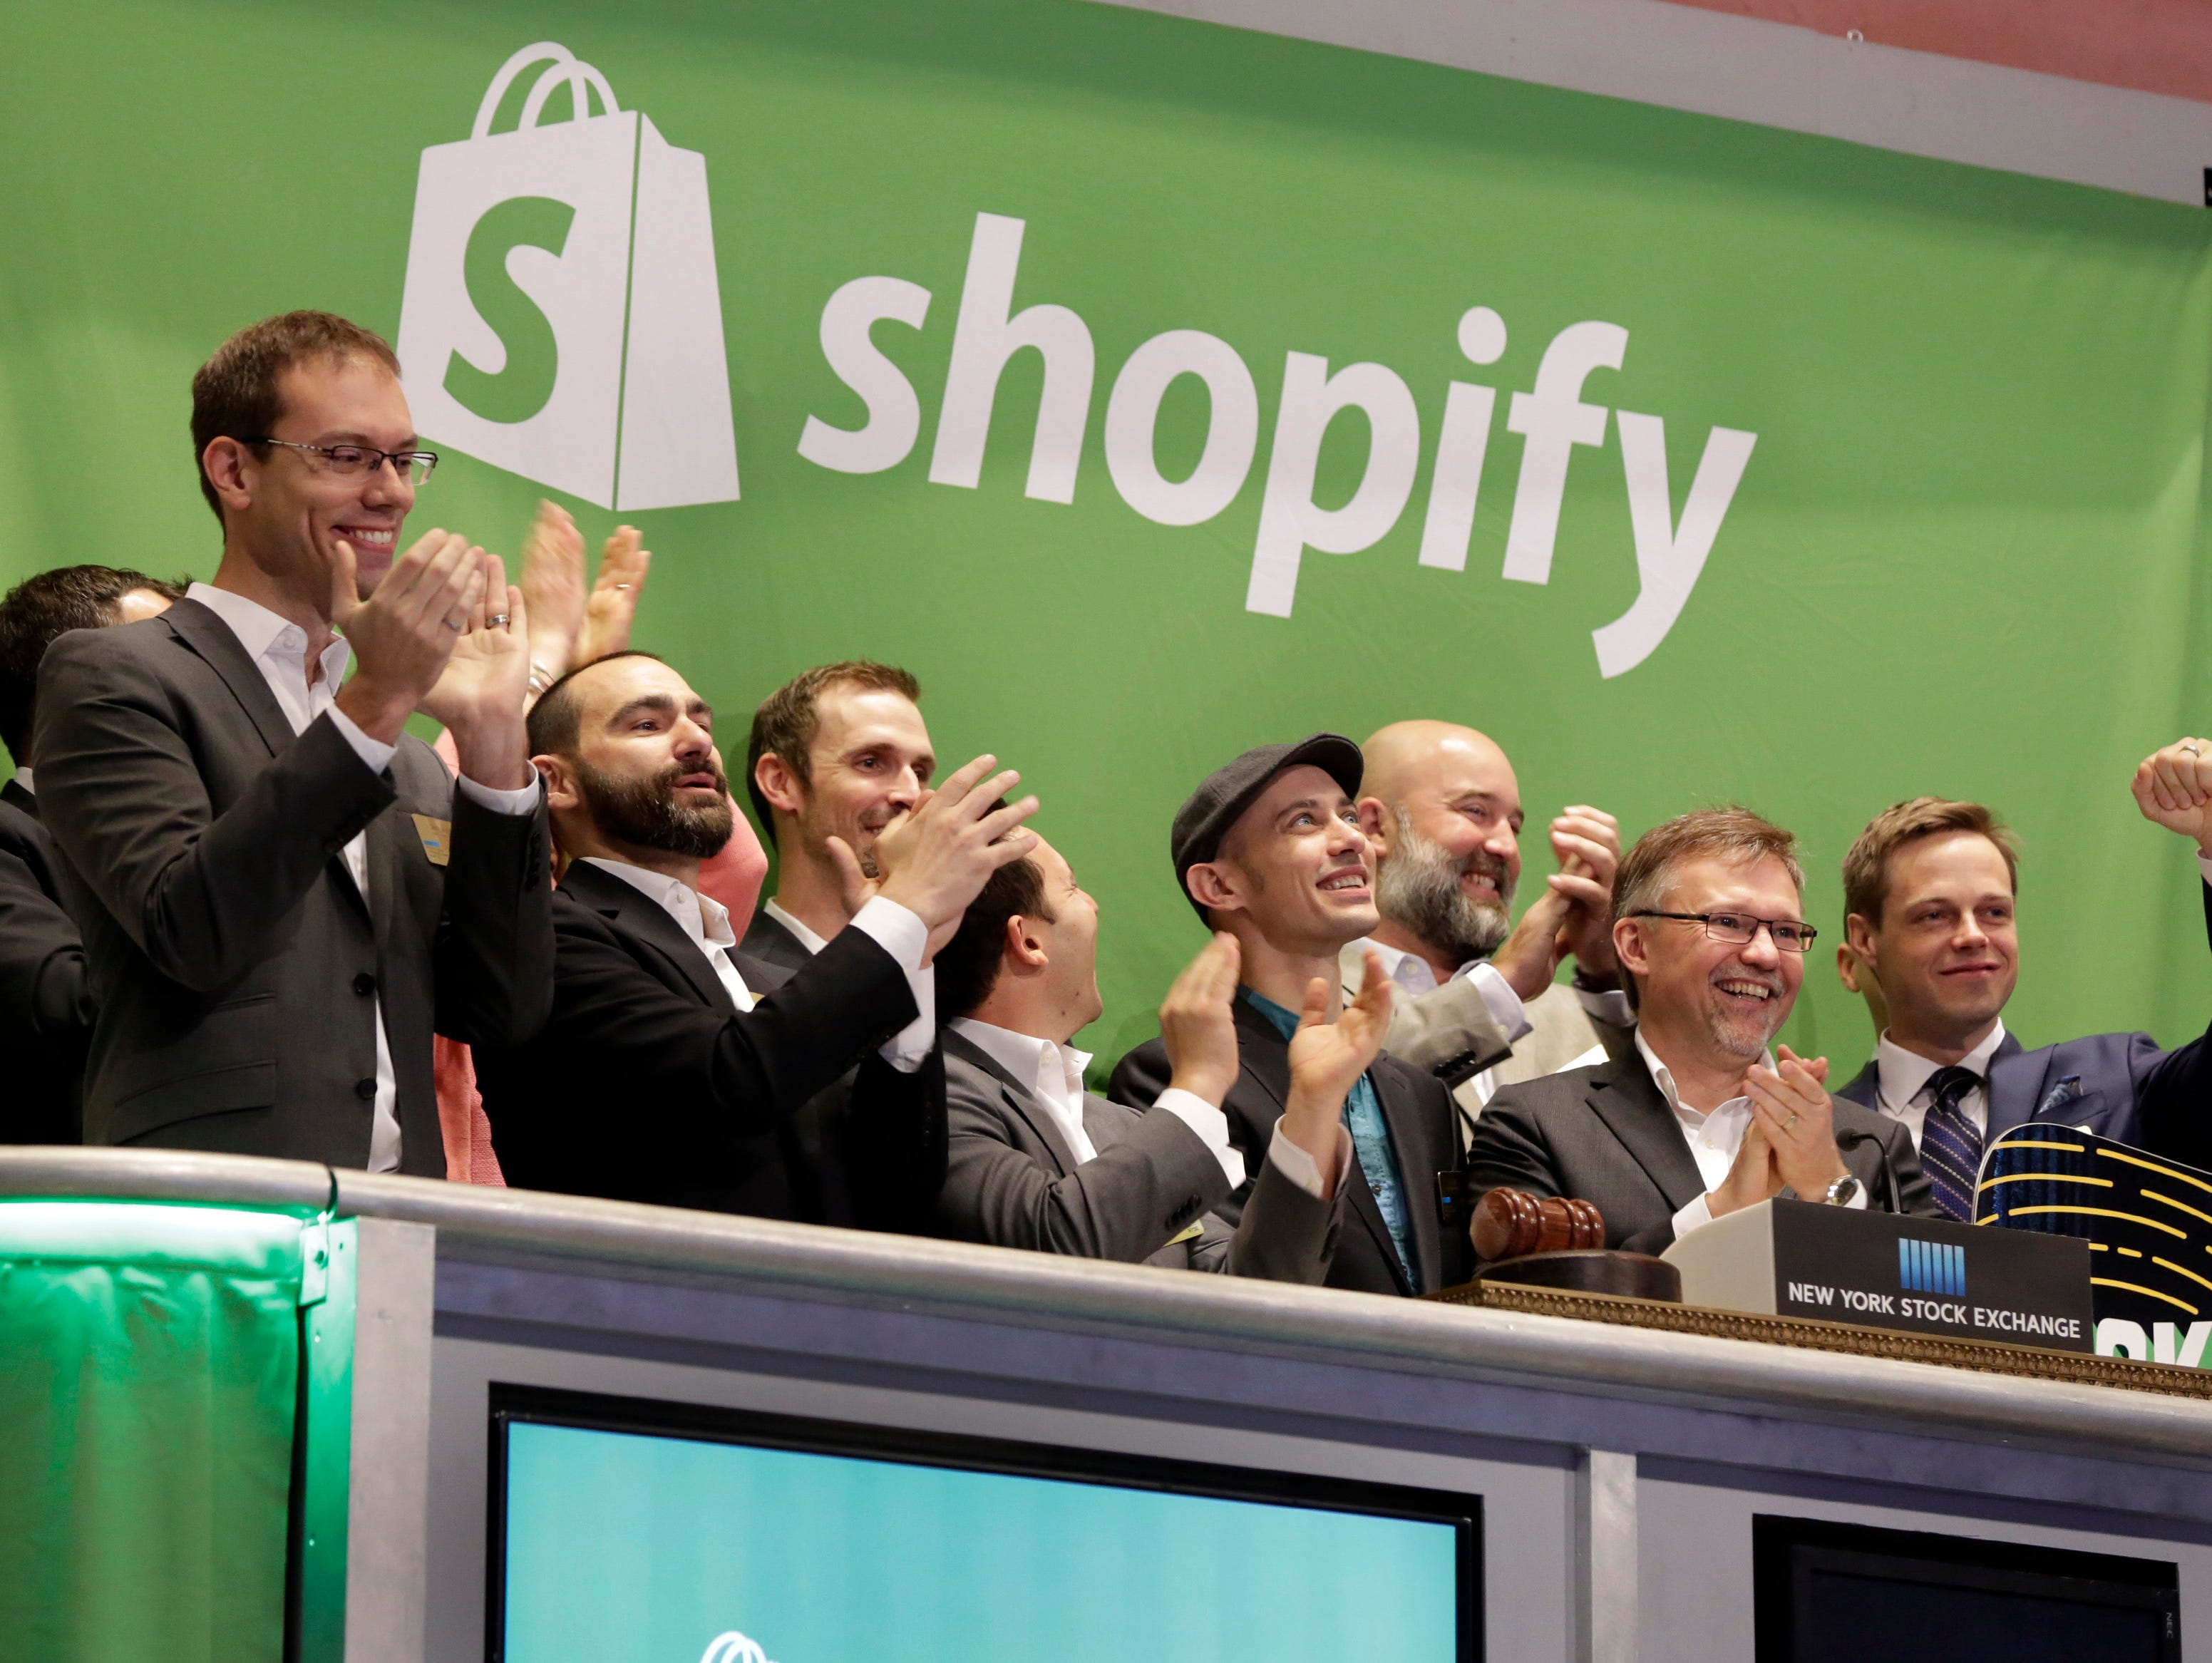 Shopify CEO Tobias Lutke, center wearing hat, is celebrated as he rings the New York Stock Exchange opening bell on Thursday.